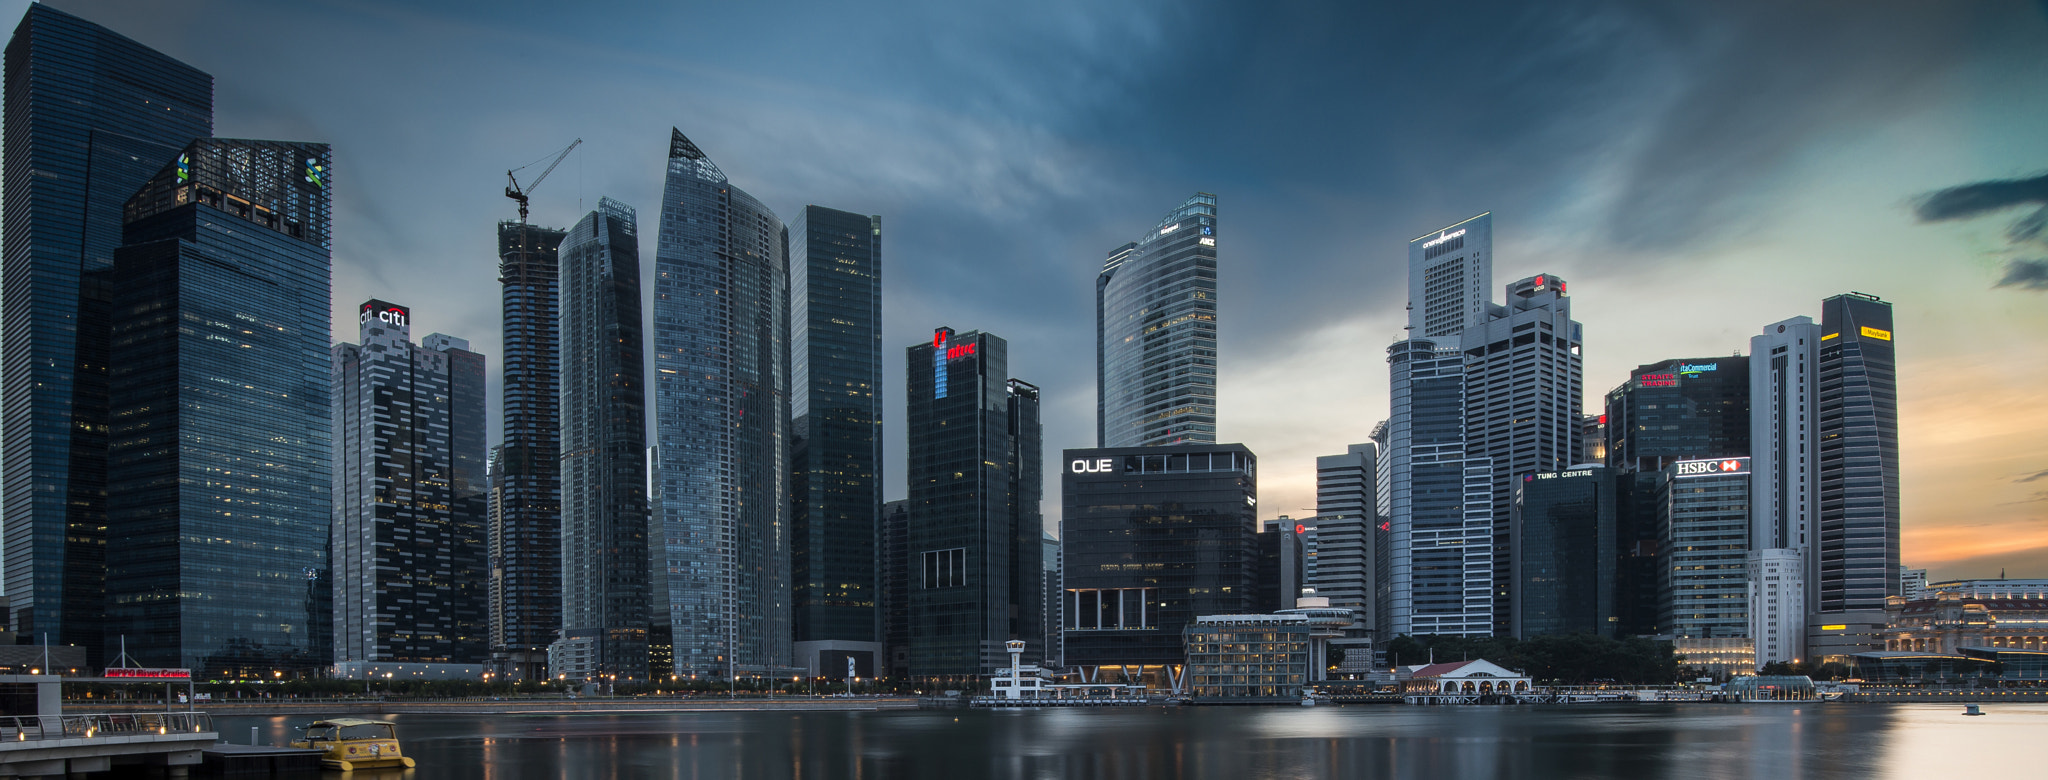 Photograph Singapore CDB area near MBS by Andy Sim on 500px